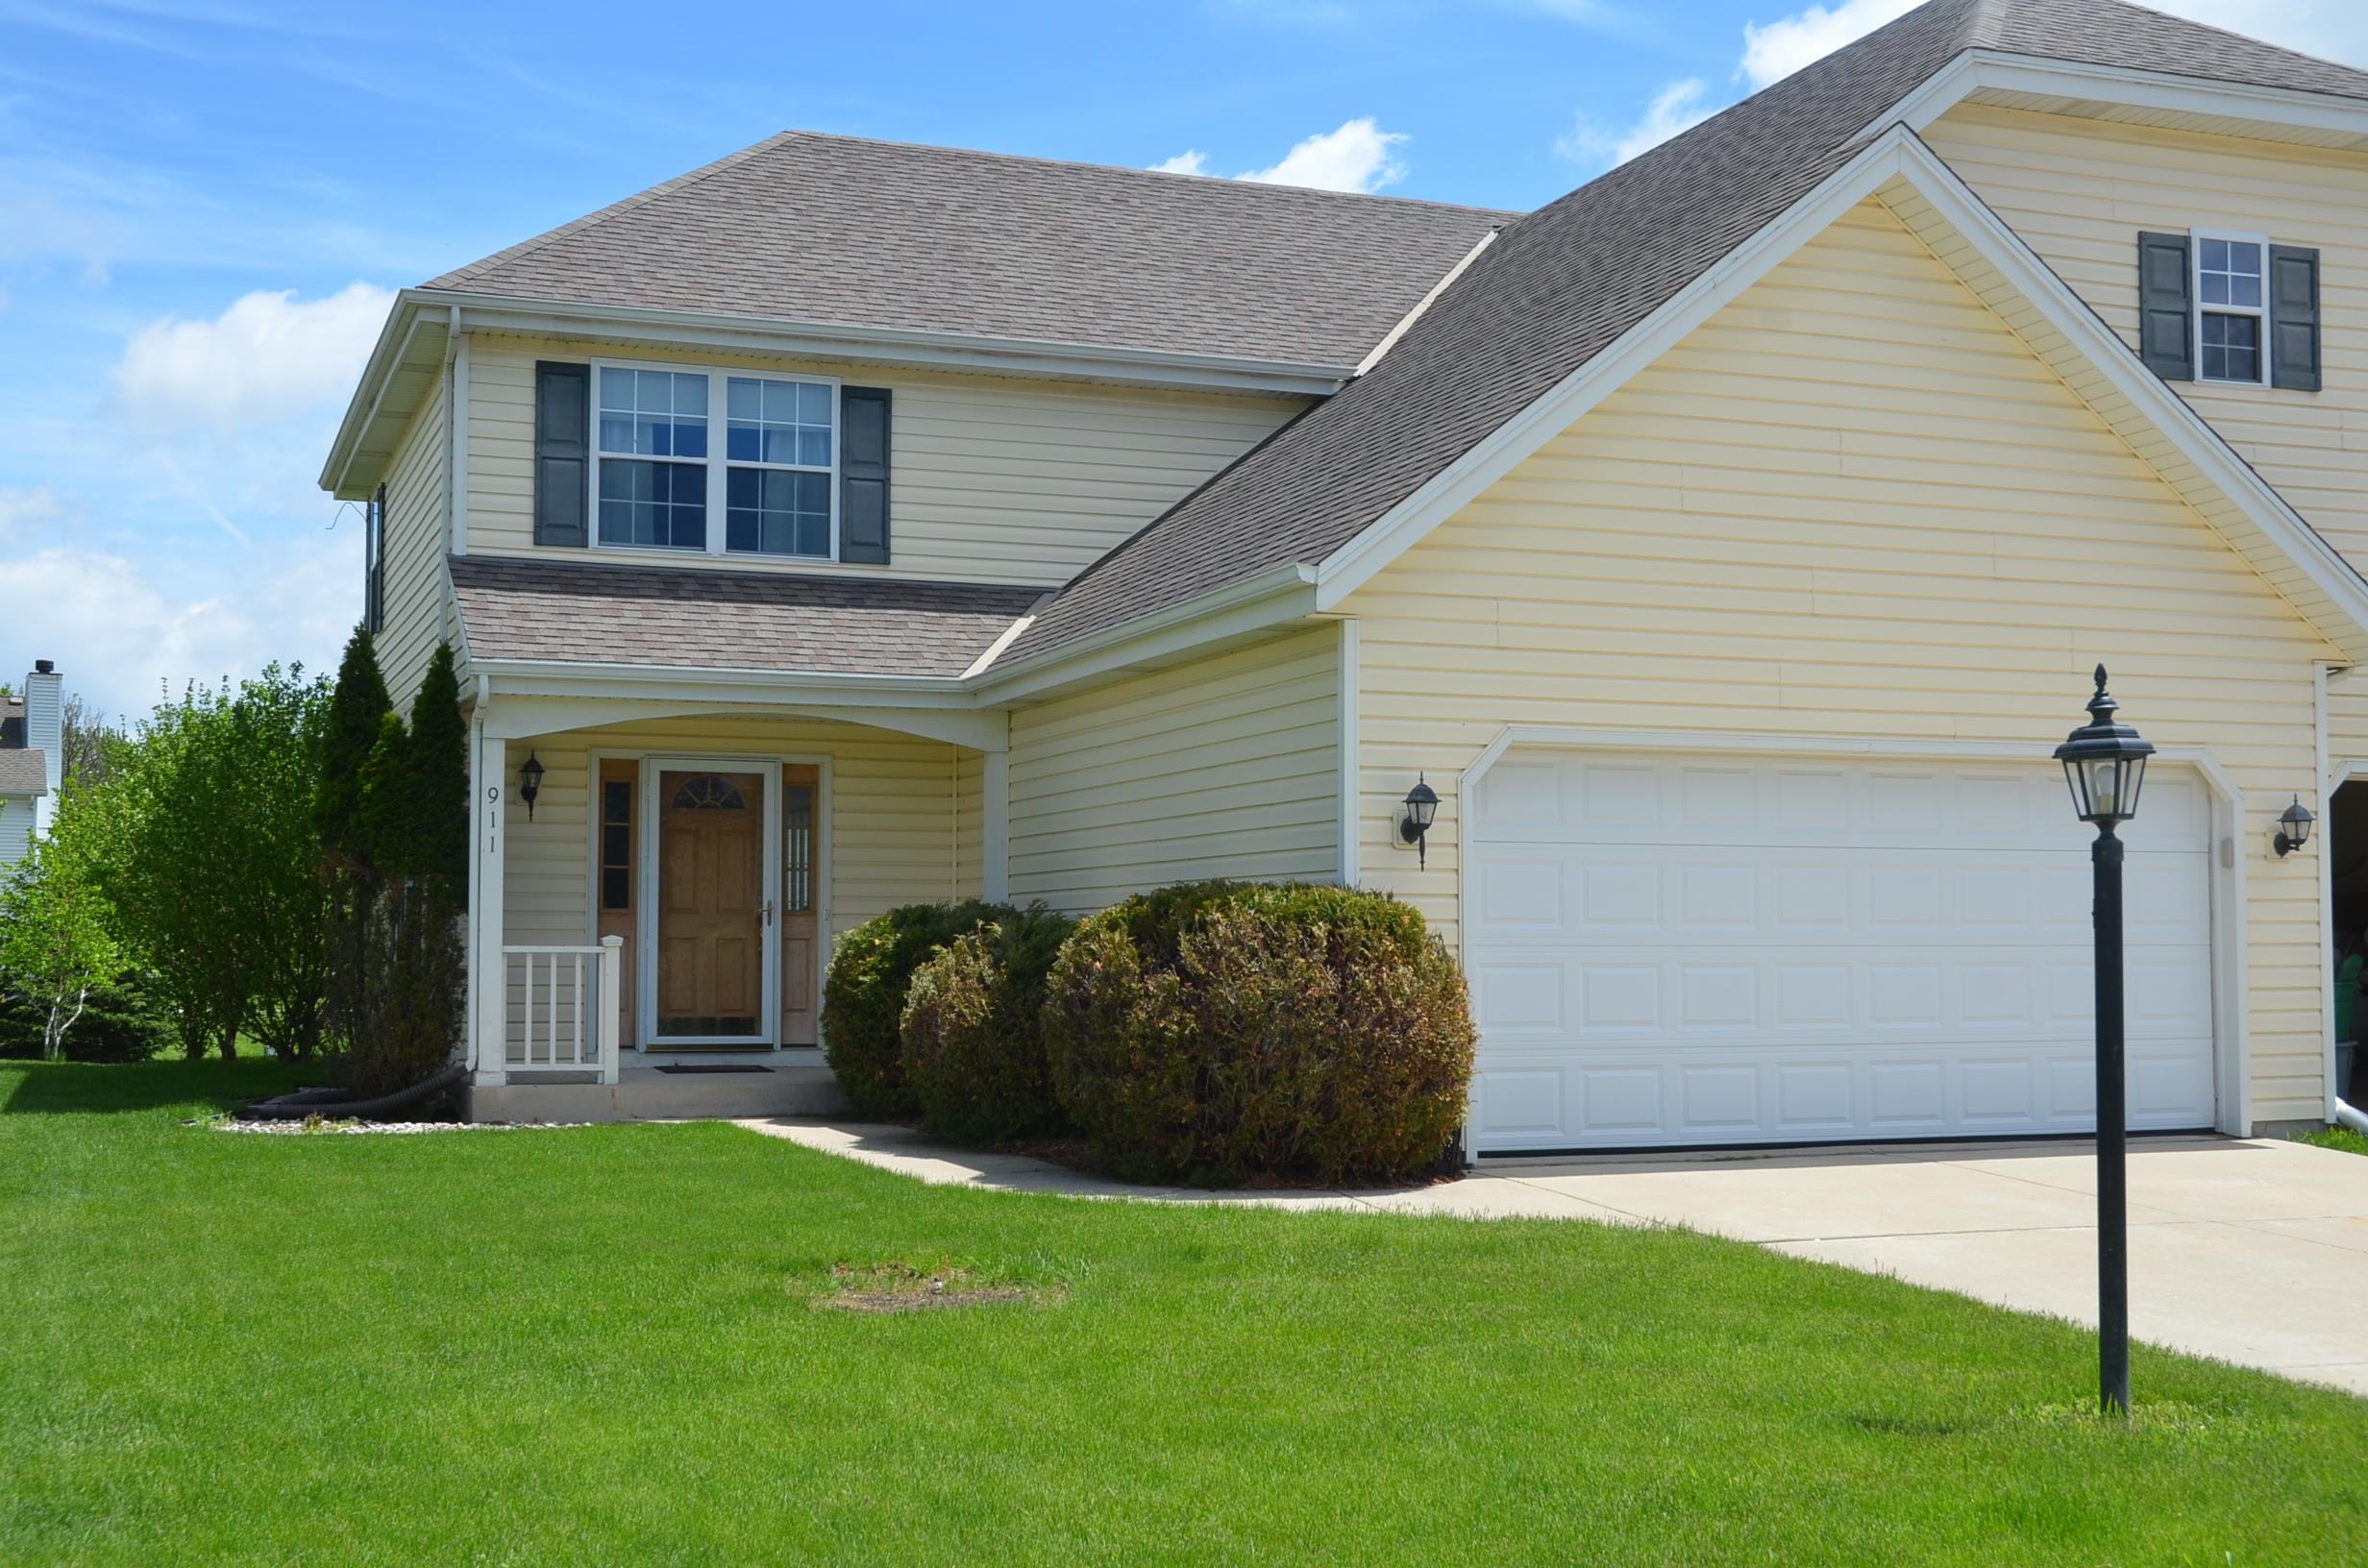 911 Spring Waters Dr, Oconomowoc, Wisconsin 53066, 3 Bedrooms Bedrooms, 7 Rooms Rooms,2 BathroomsBathrooms,Condominiums,For Sale,Spring Waters Dr,1,1639017